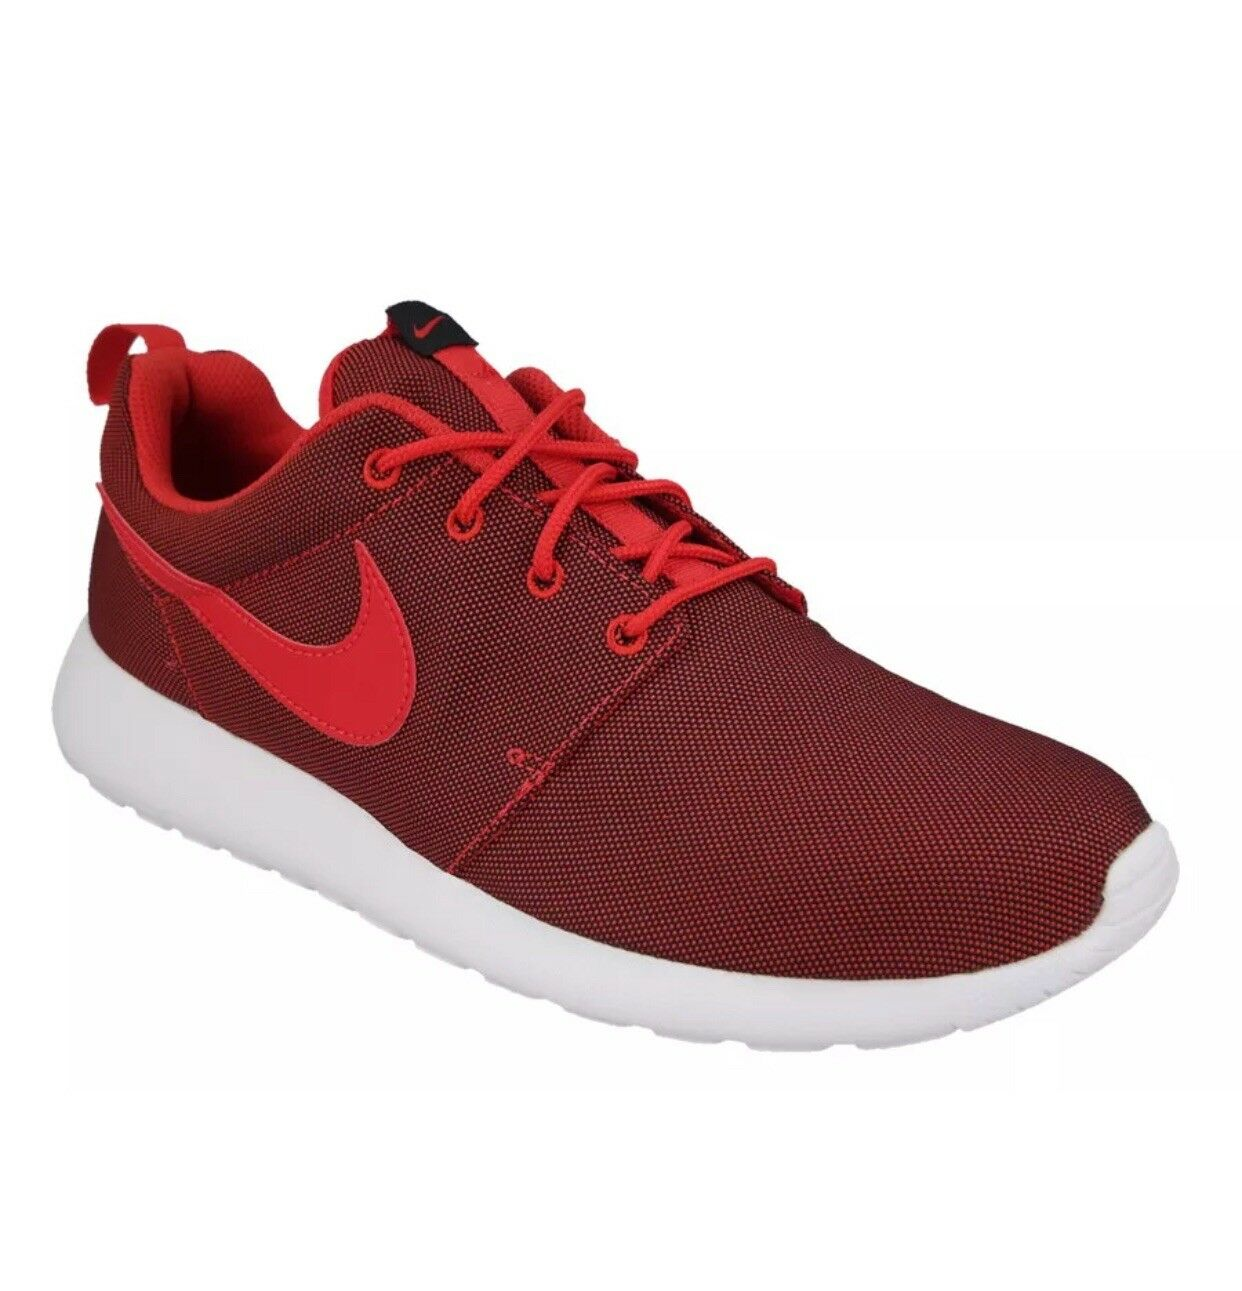 New Nike Rosie One University Premium University One Red/white (525234 660) Size 10.5 6171d7